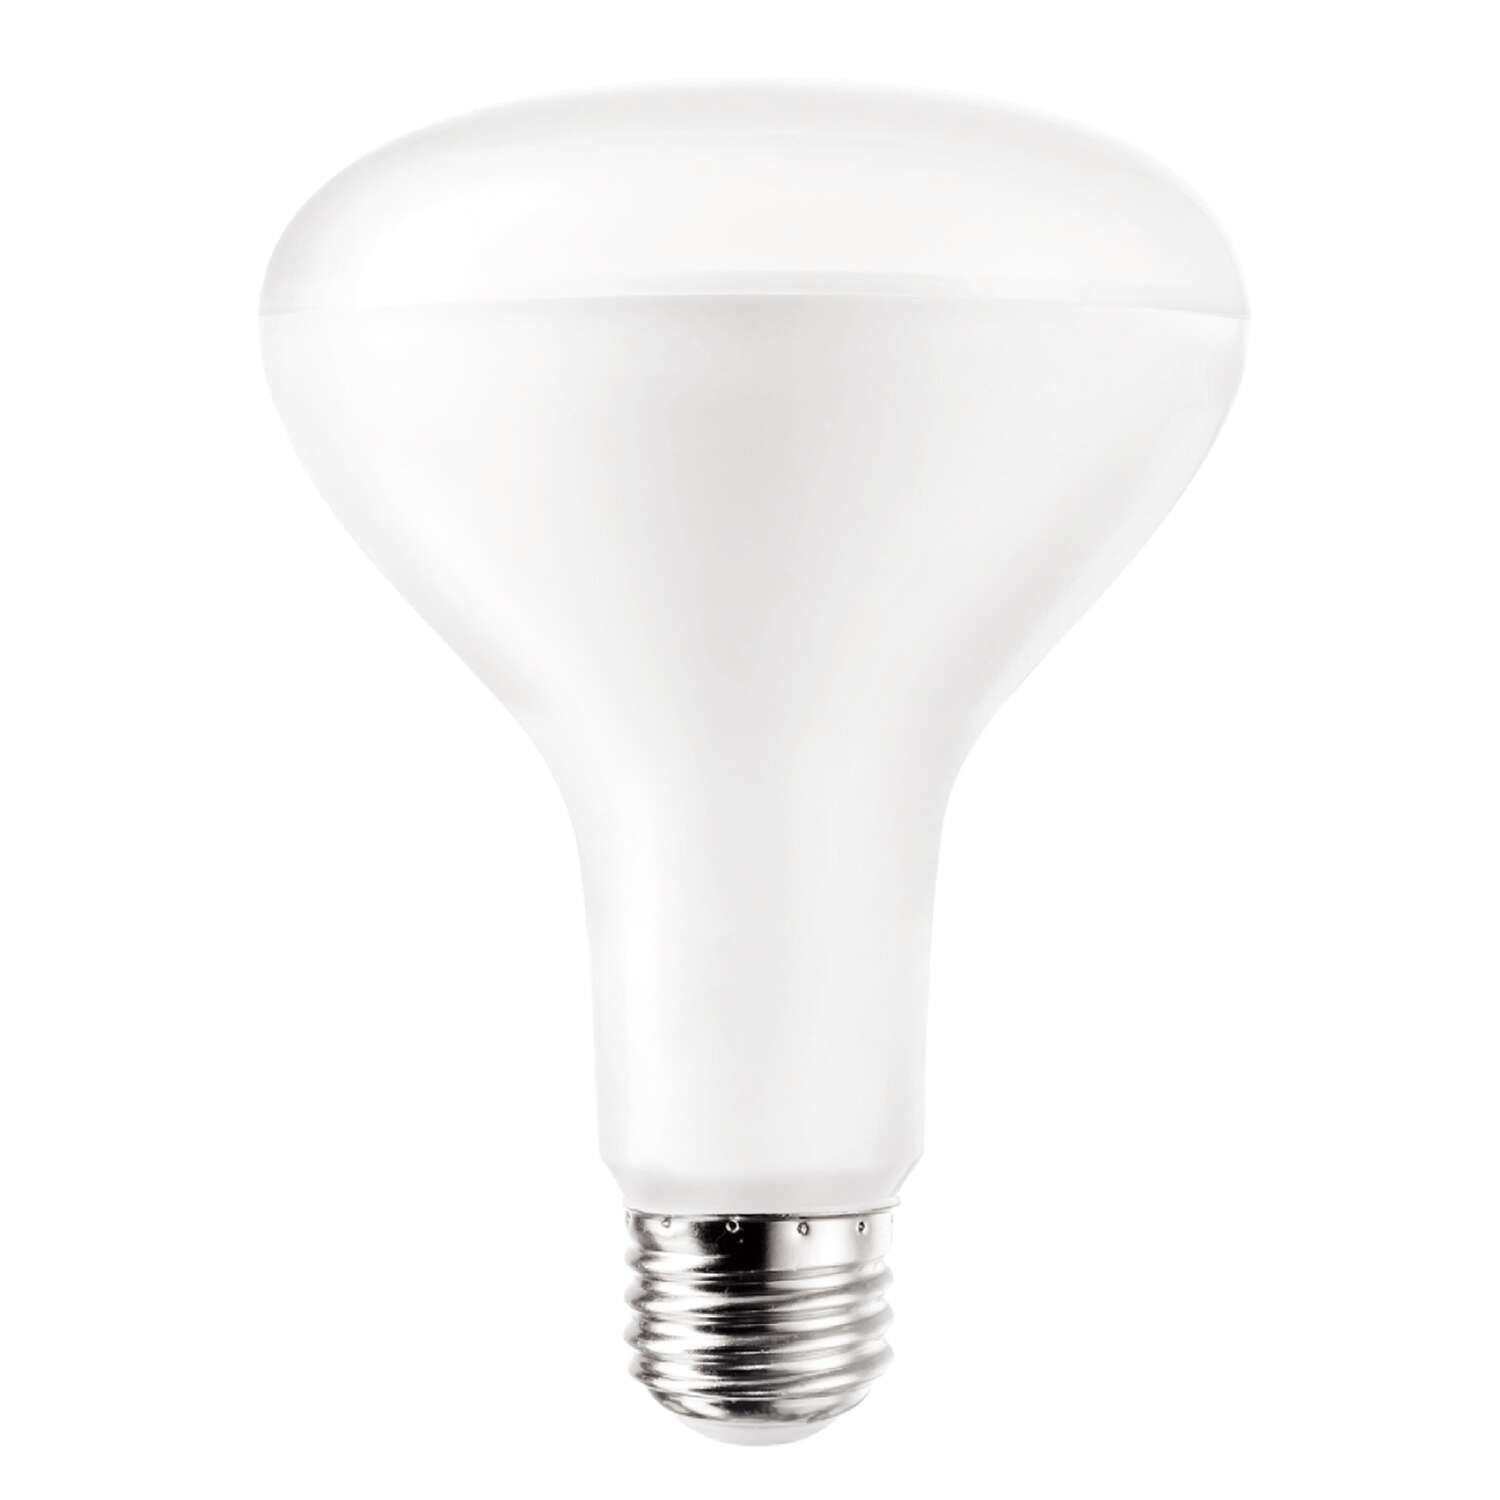 Globe Electric  Disinfecting Germicidal Light Bulb  BR30  E26 (Medium)  LED Disinfection Bulb  White